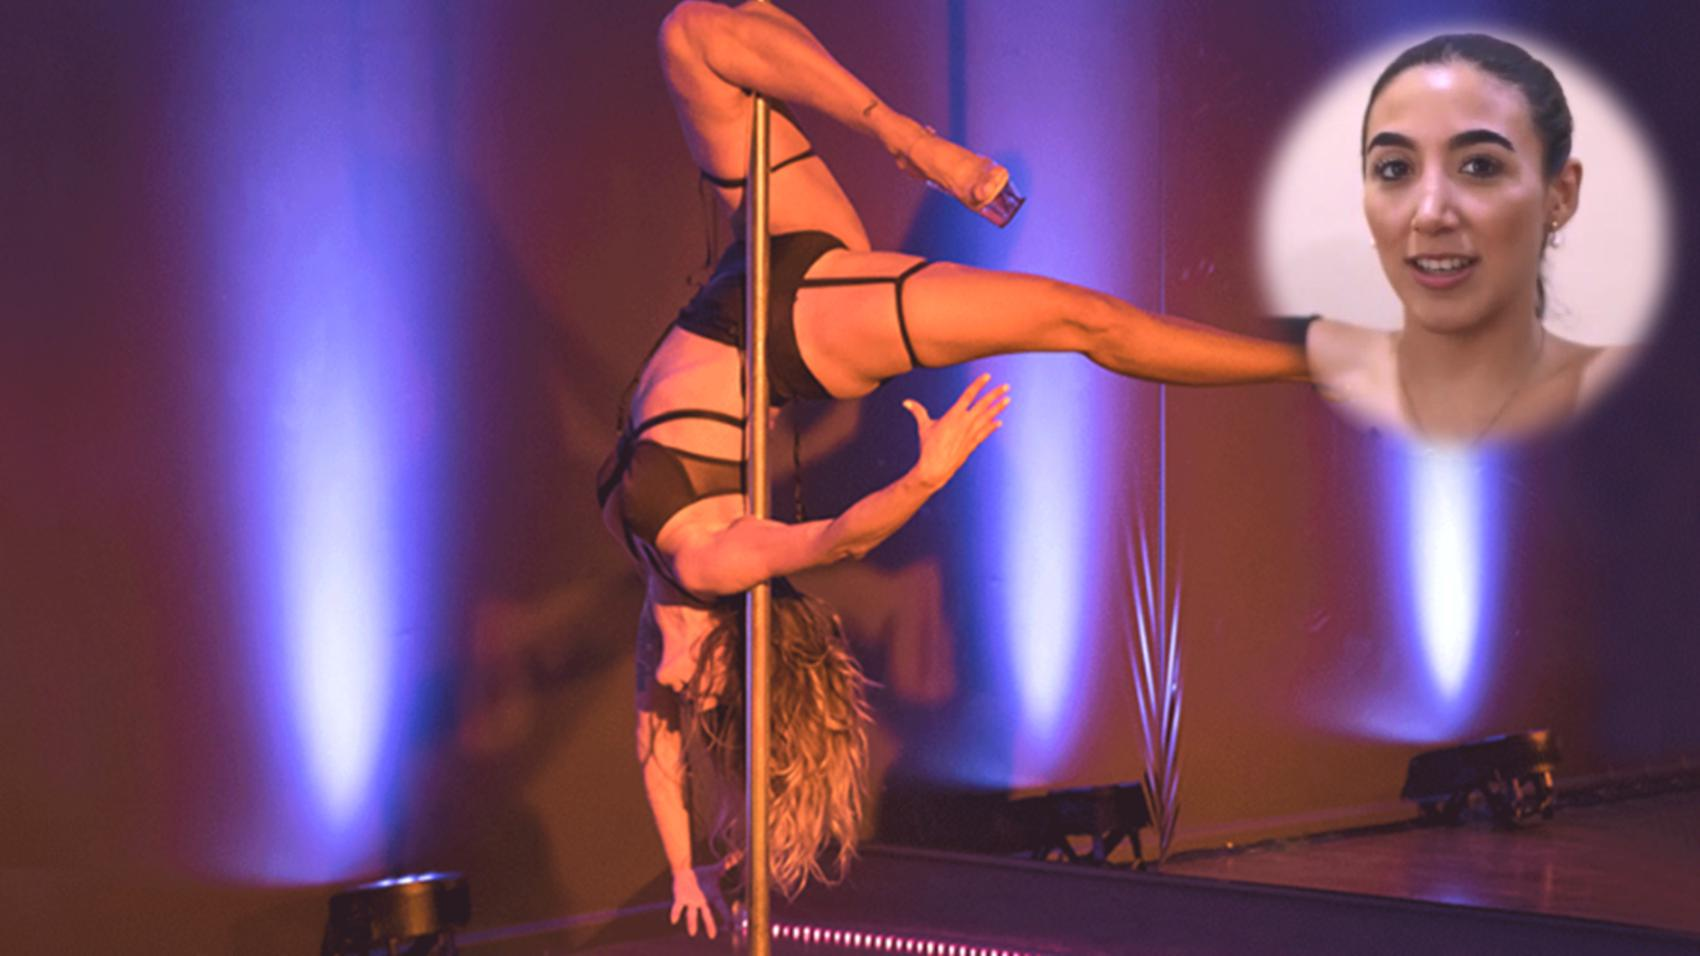 Exotic Pole Dancing